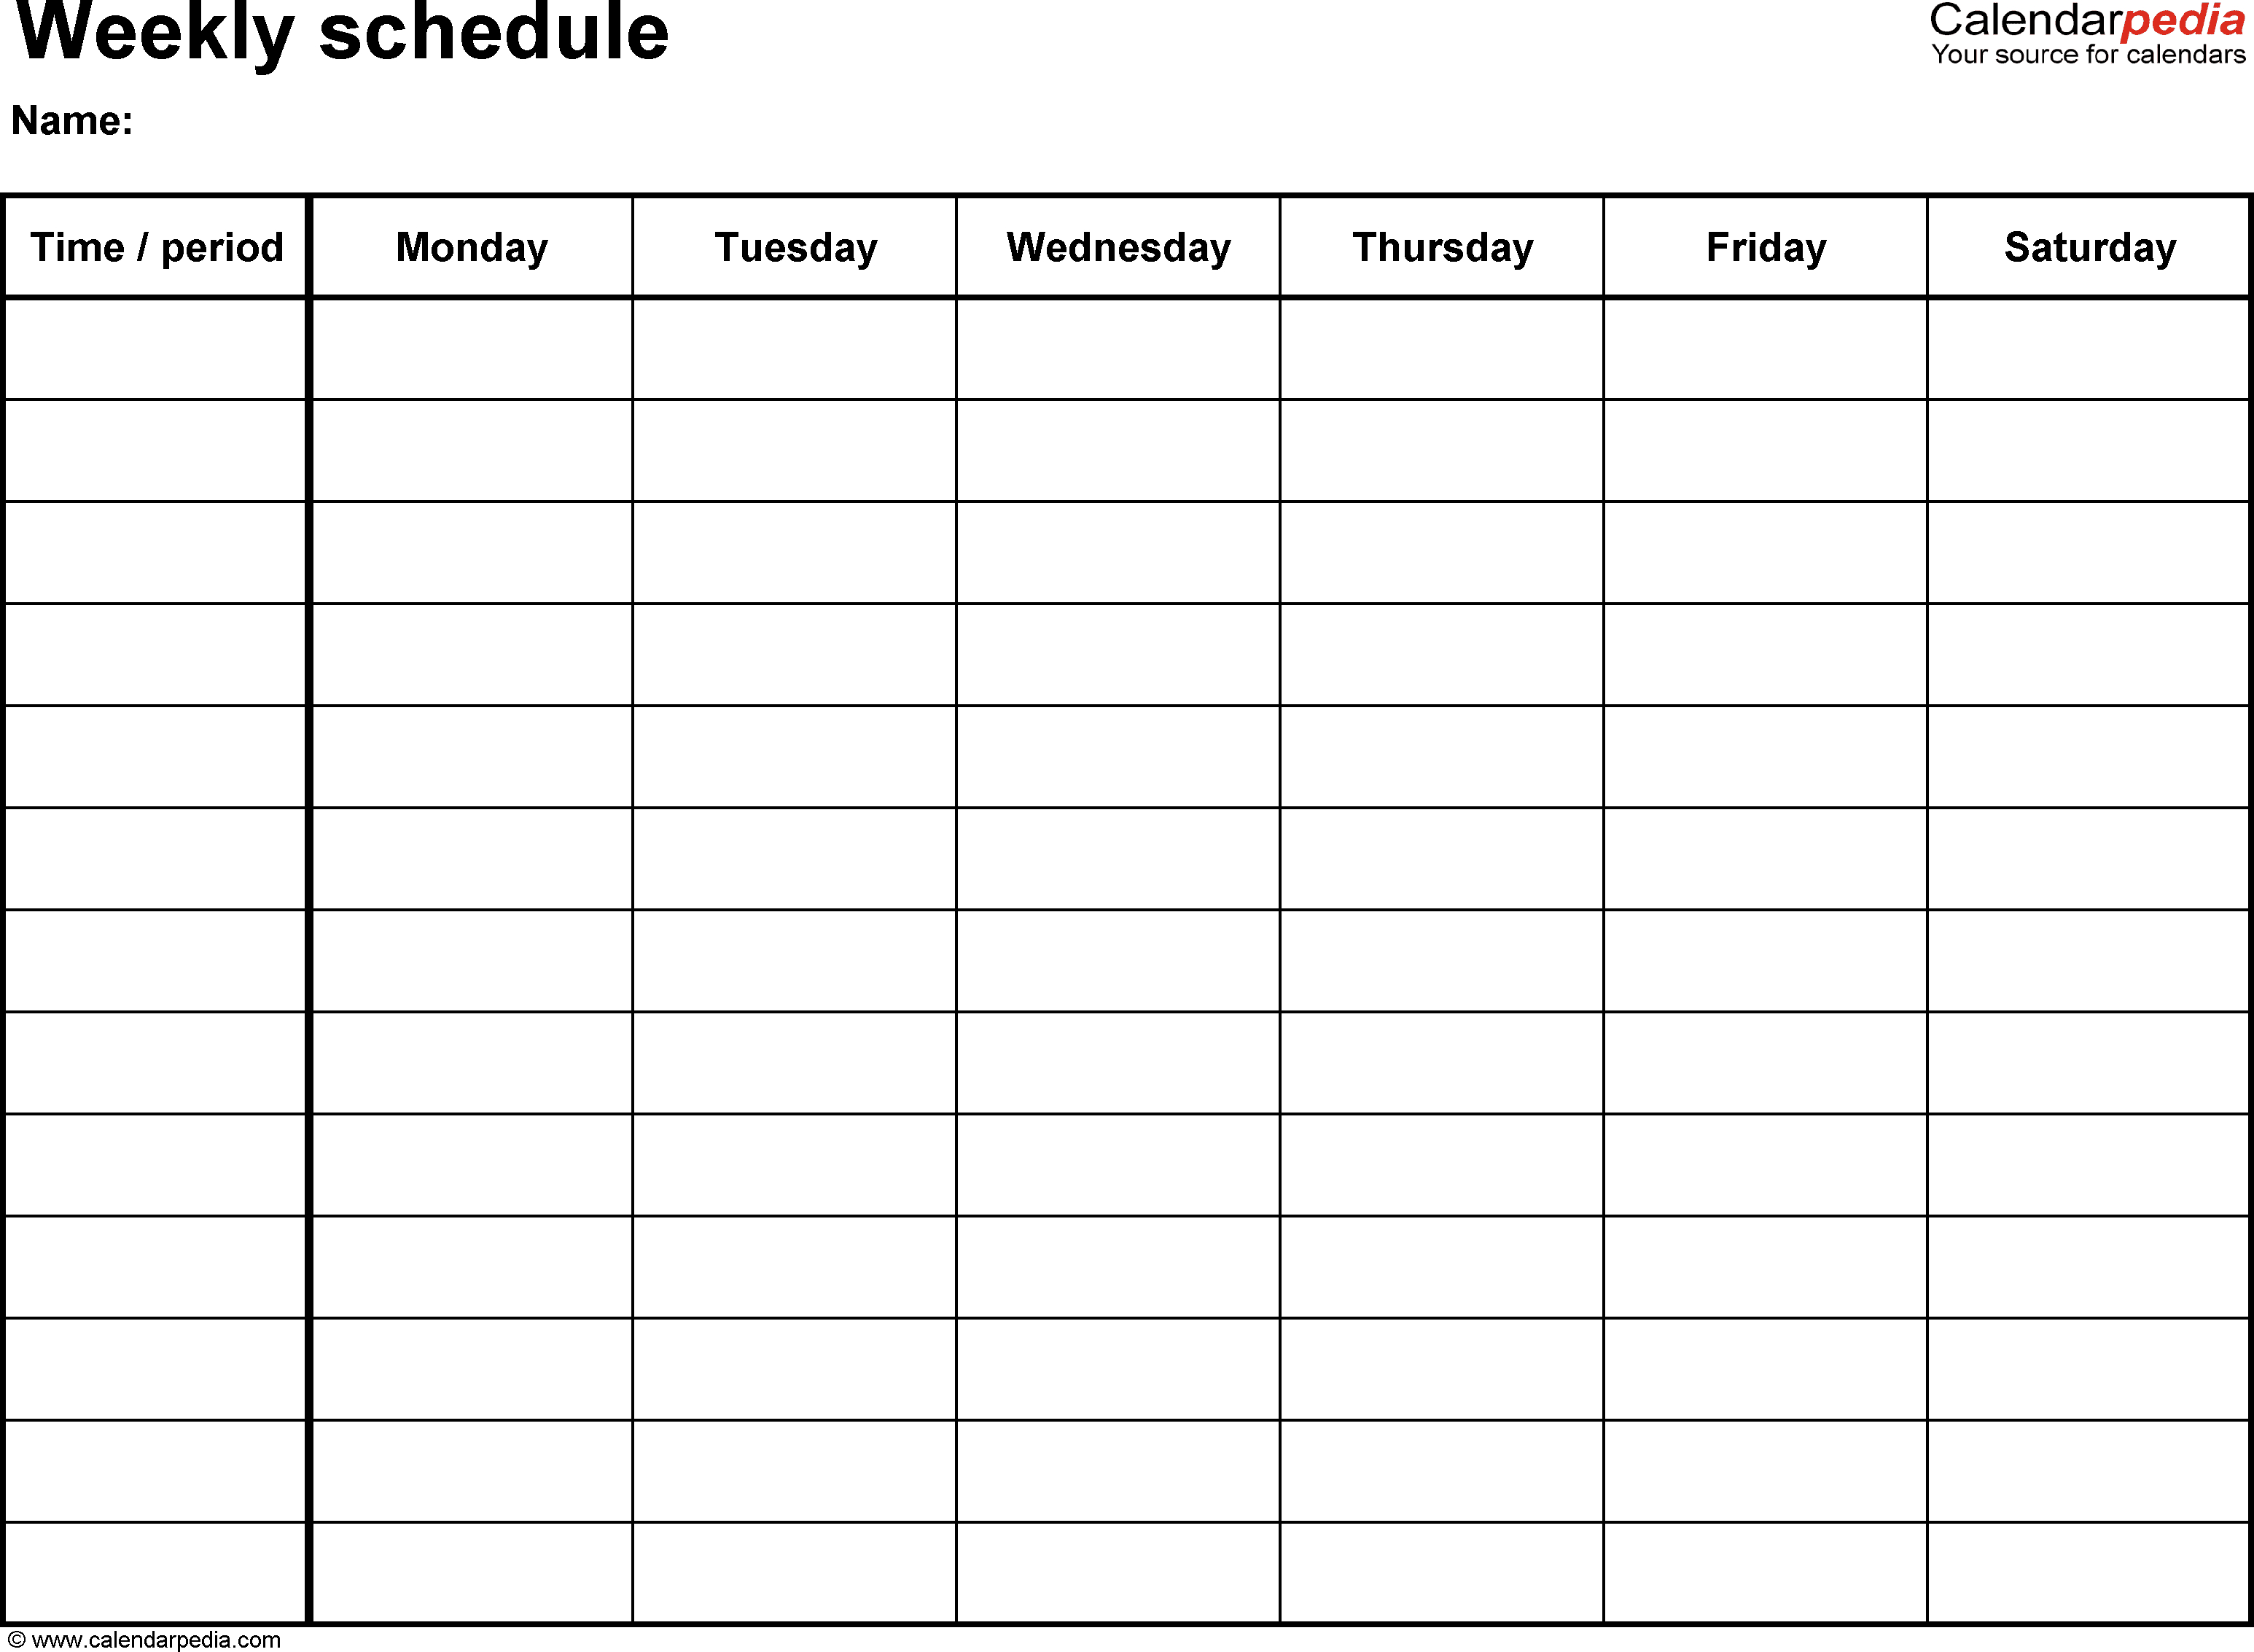 Free Weekly Schedule Templates For Word - 18 Templates within Printable Work Week Calendar Template